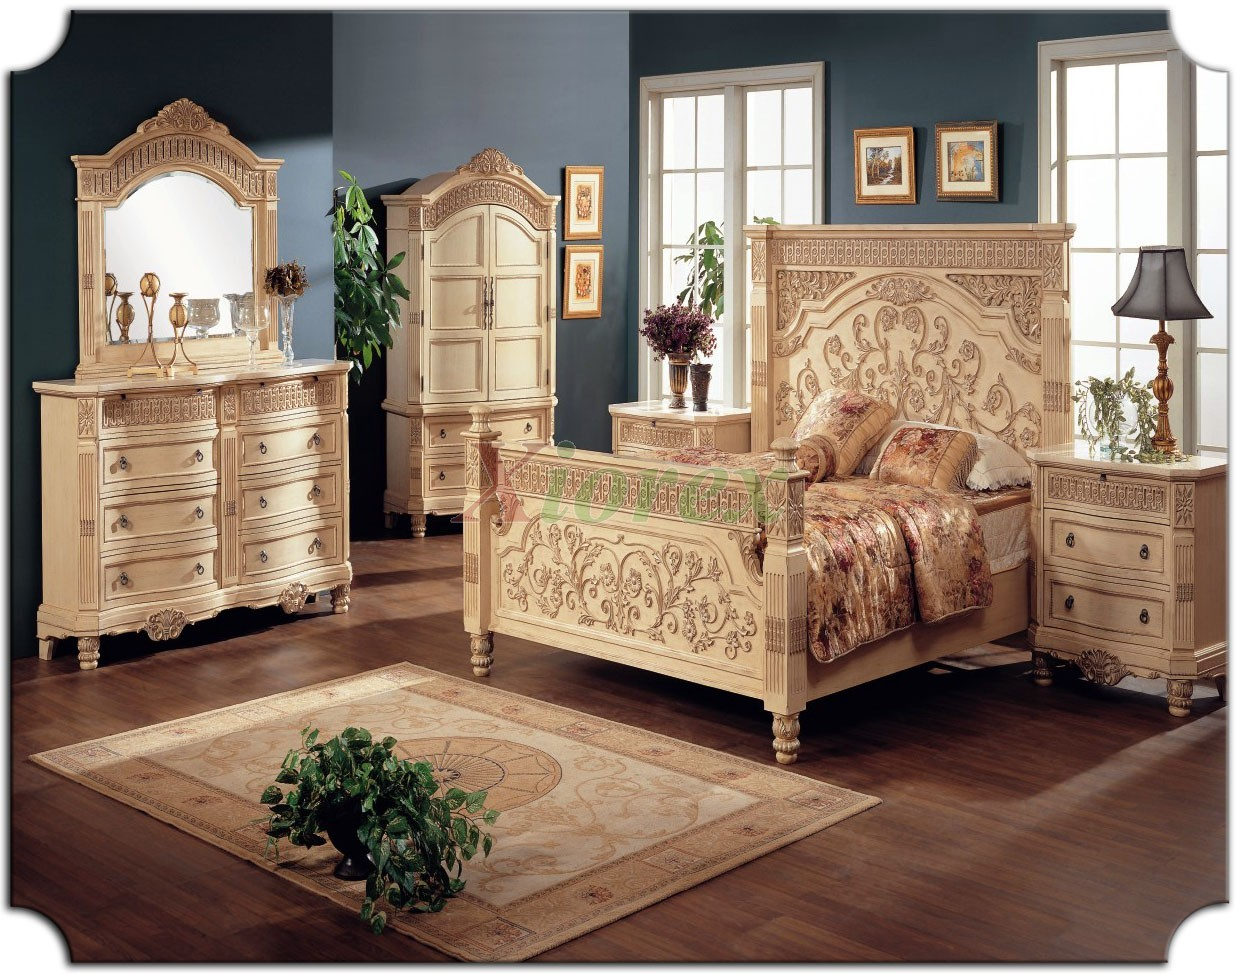 poster bedroom furniture set w tall headboard beds 116 xiorex